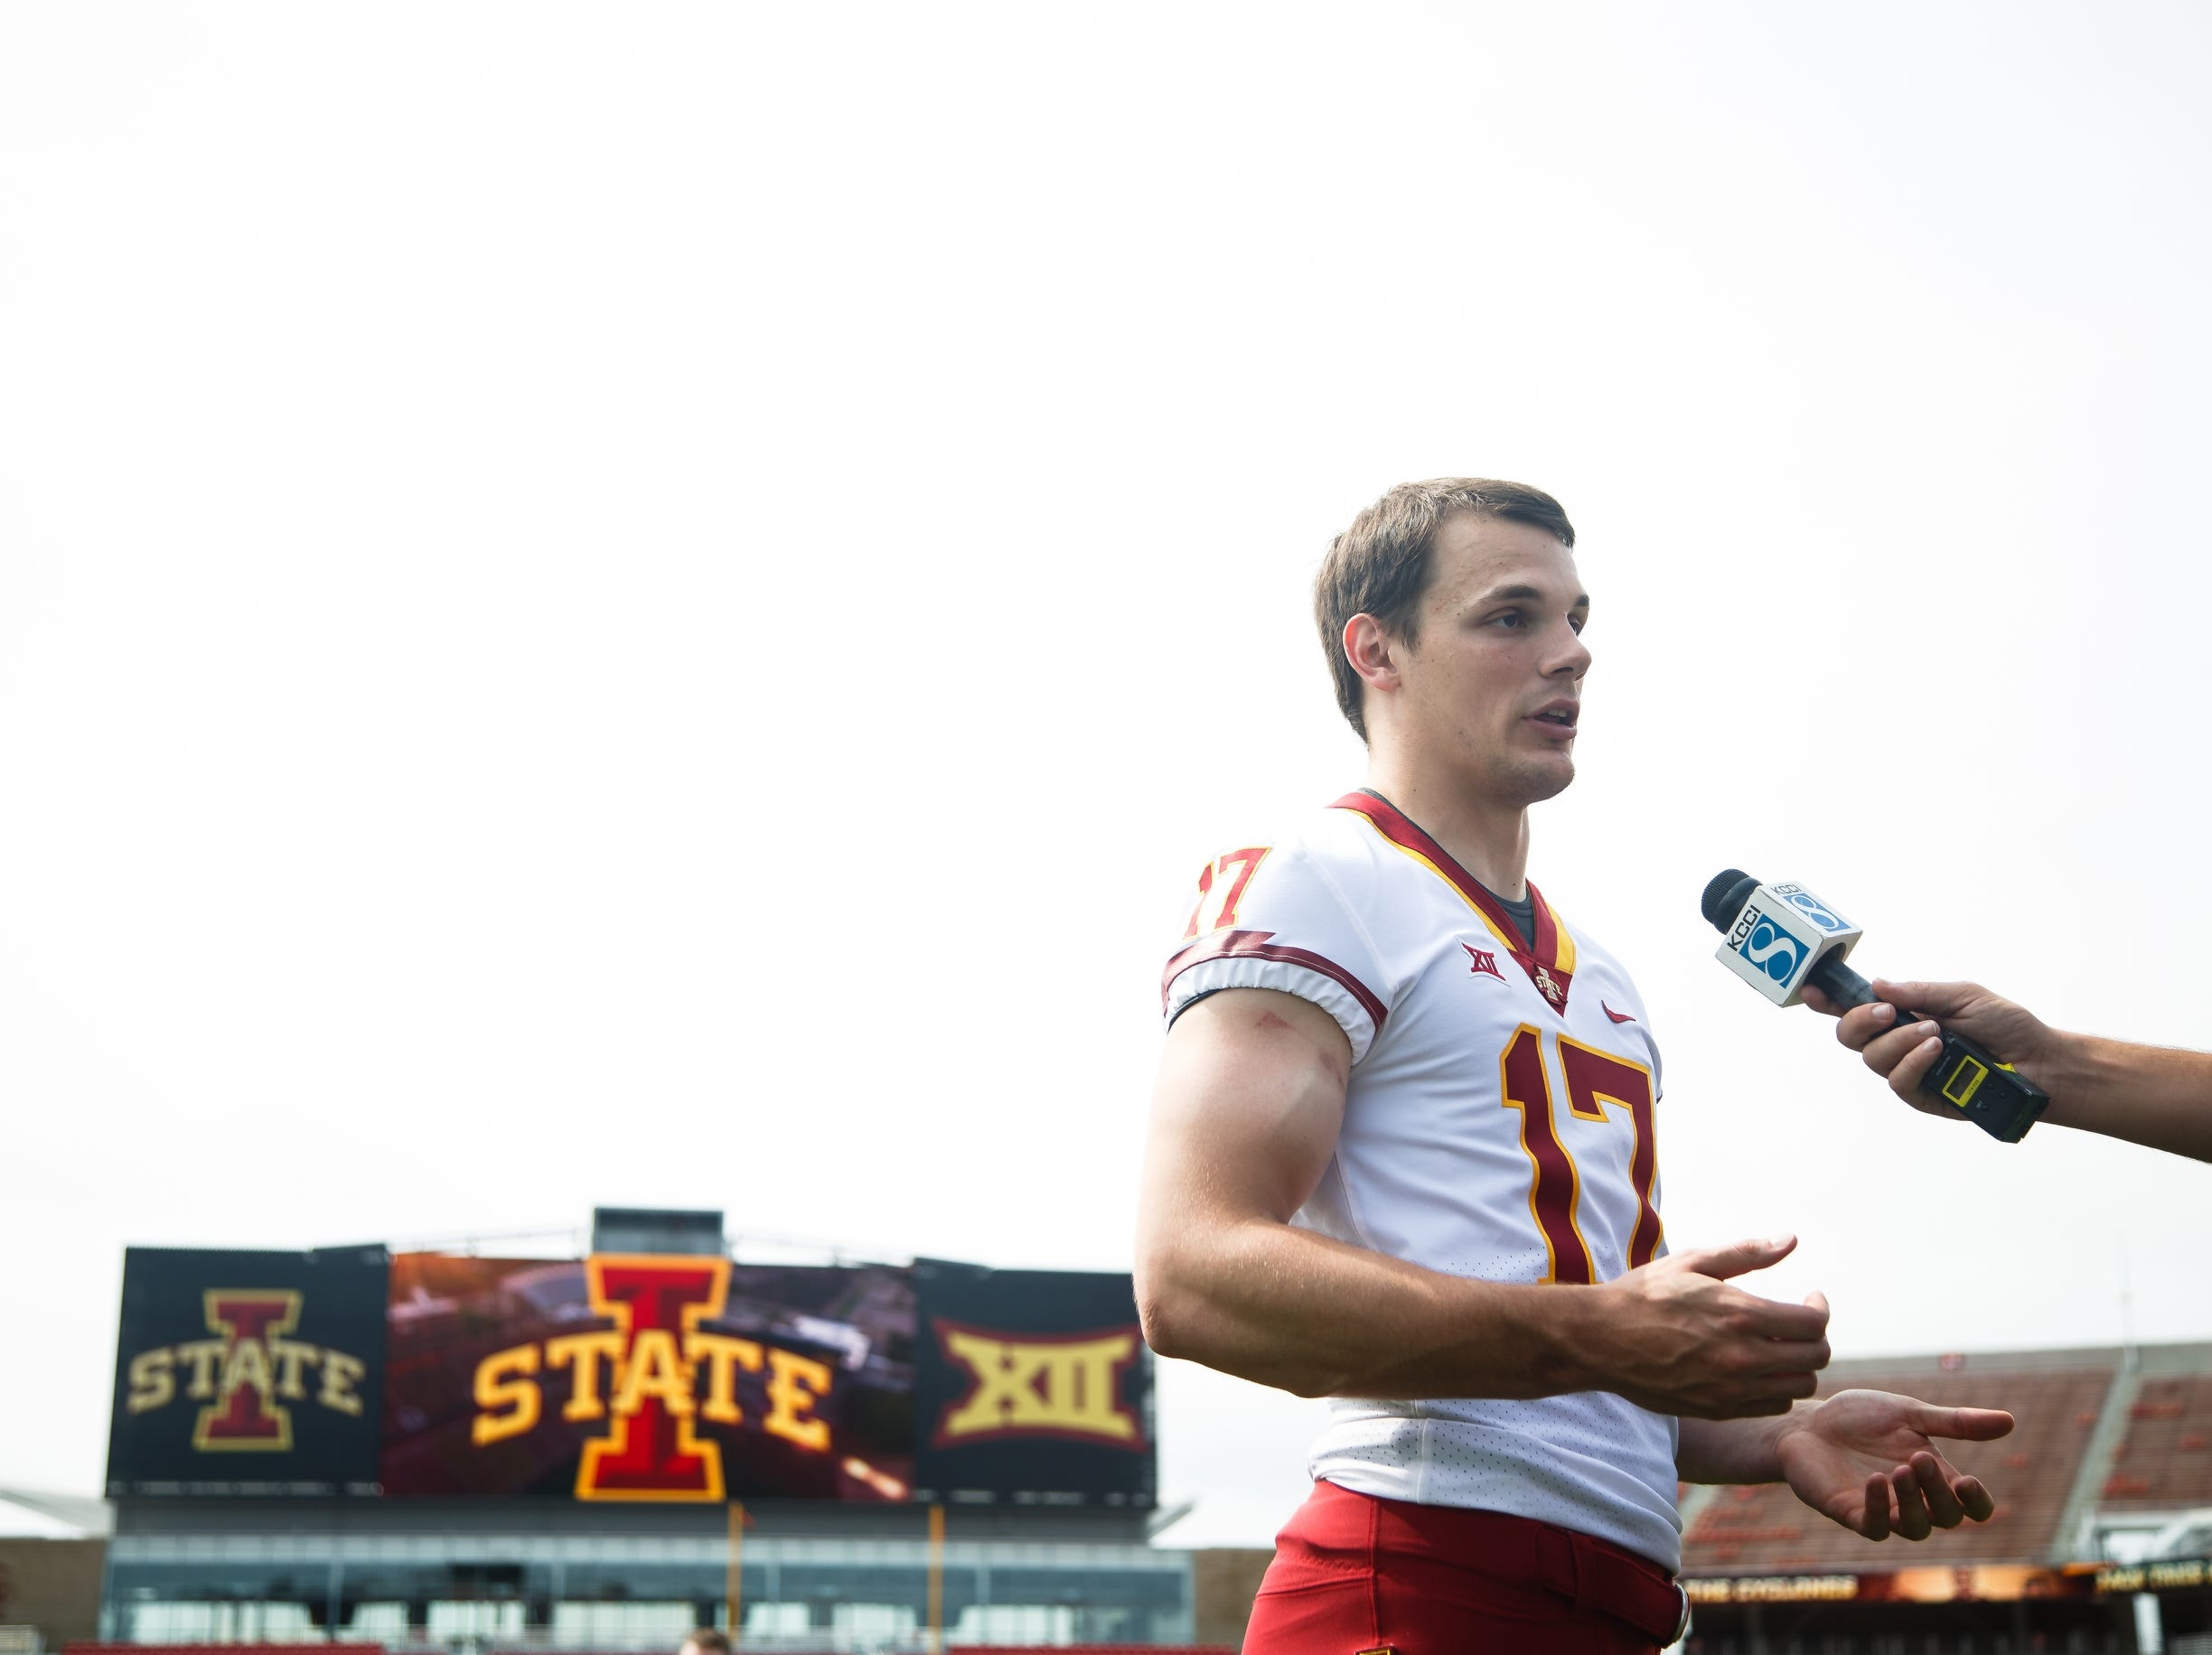 Iowa State quarterback Kyle Kempt talks to reporters during media day on Tuesday, Aug. 7, 2018 in Ames.